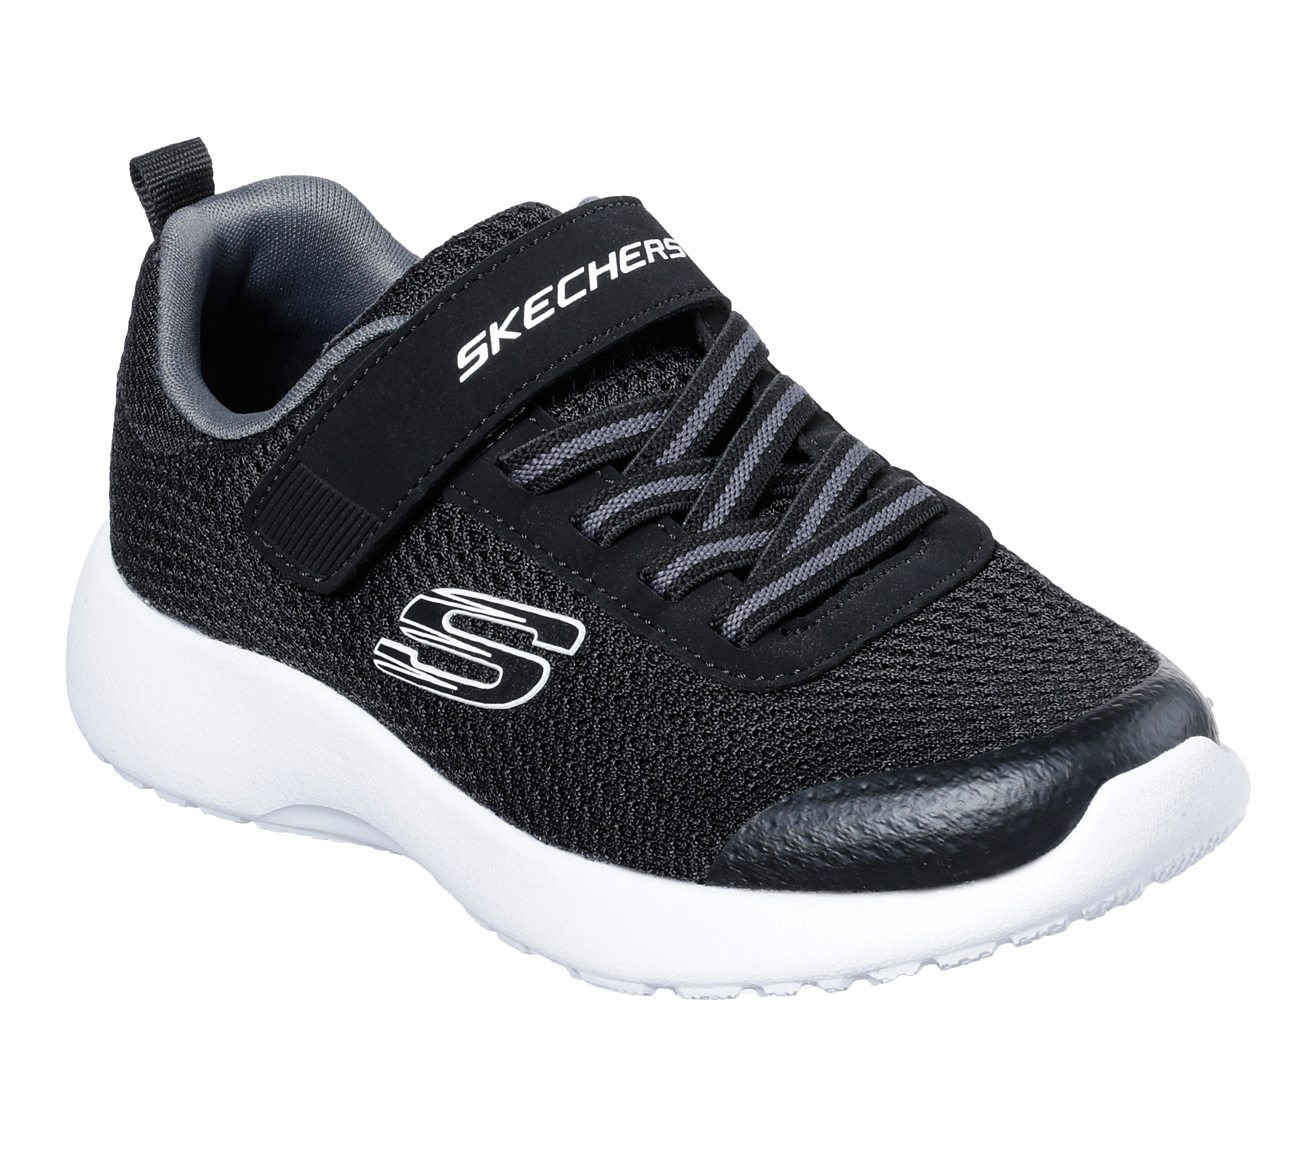 9f536c4bef9c Buy SKECHERS Dynamight - Ultra Torque SKECHERS Sport Shoes only £35.00